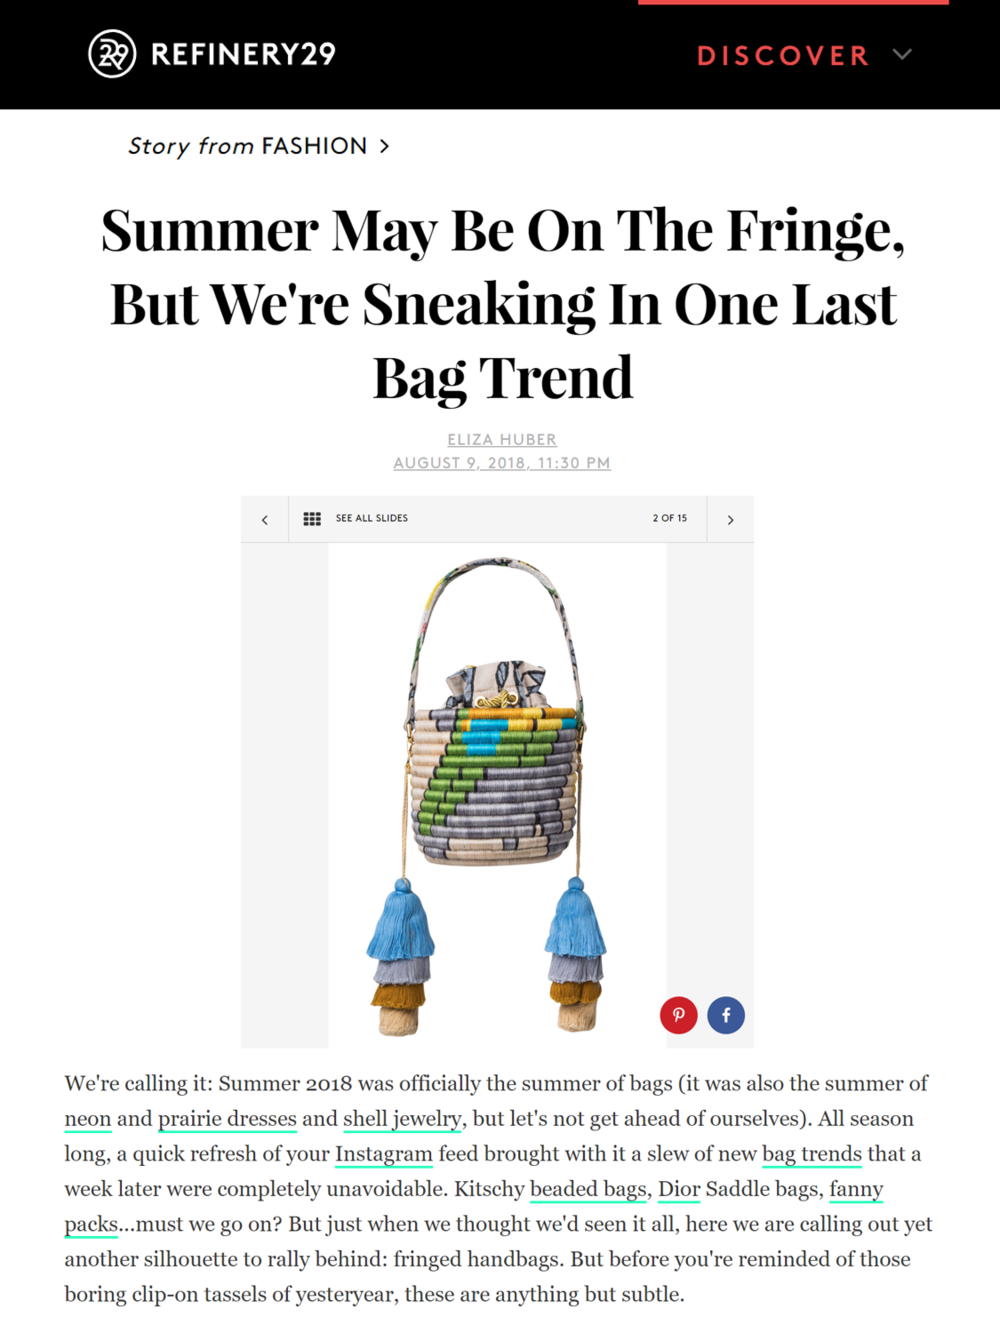 REFINERY 29 MAISON ALMA BUCKET BAG DOS LOROS TASLES PRESS.png